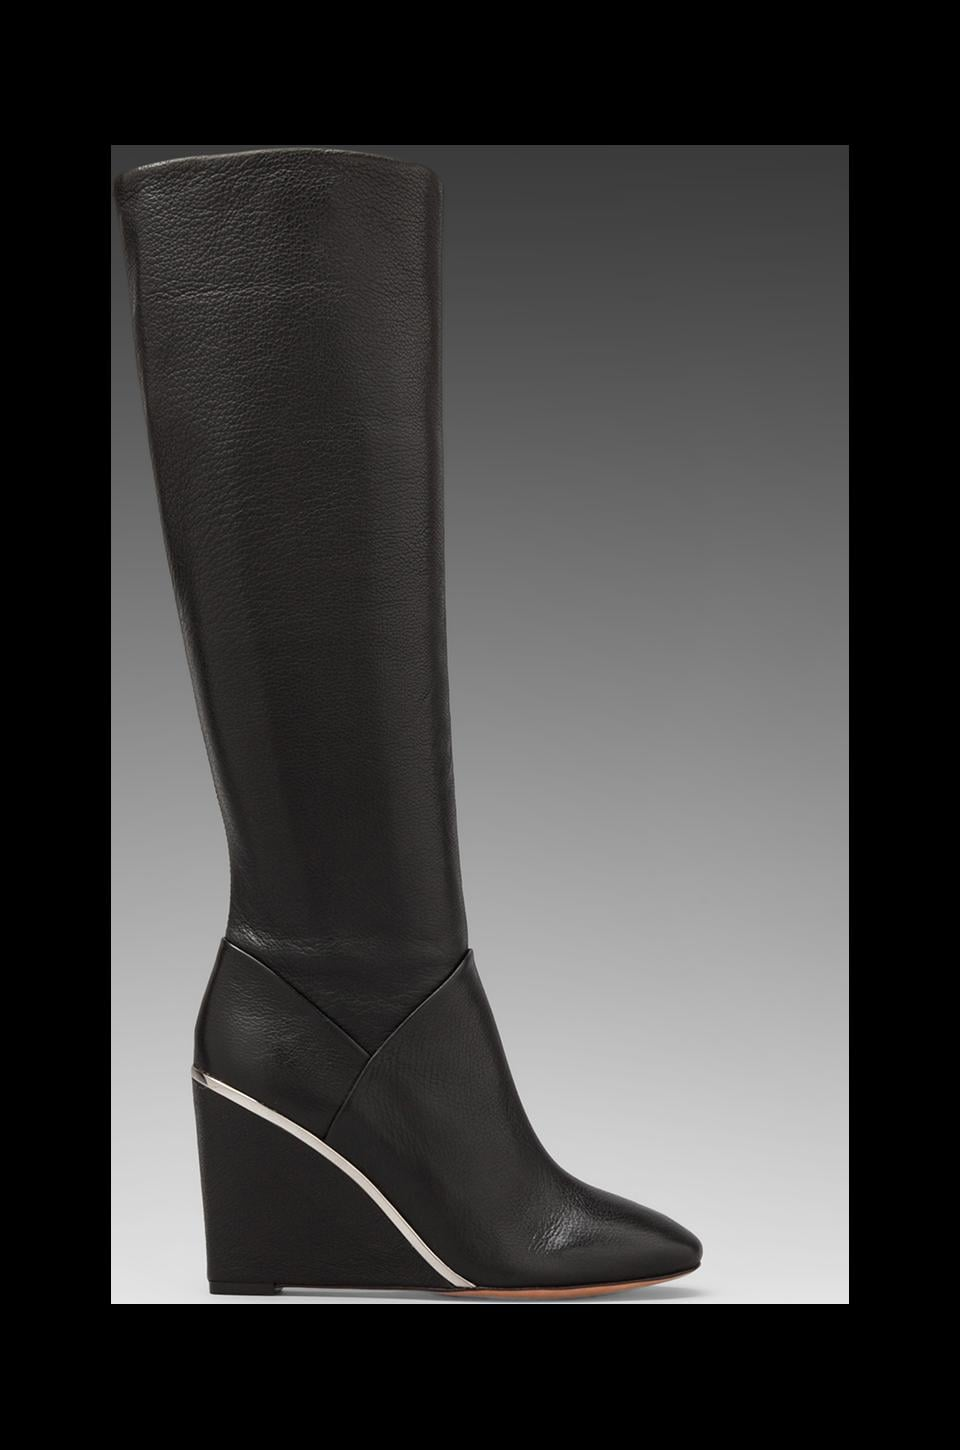 Diane von Furstenberg Paula Boot in Black